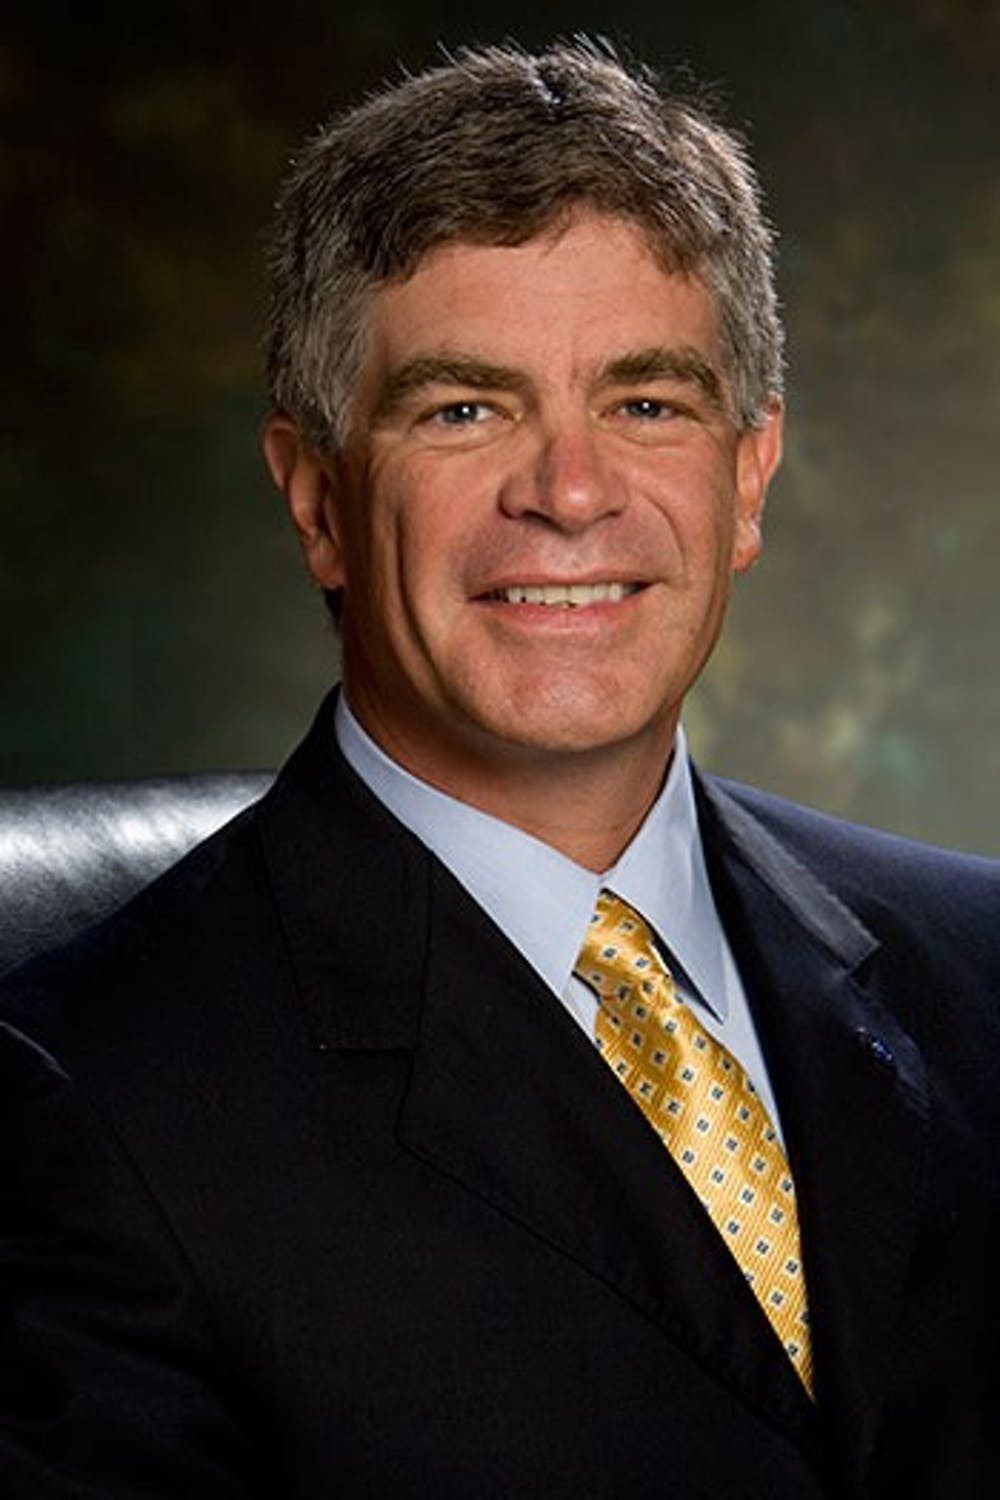 <p>Former Wharton Dean Patrick Harker was named the next president and CEO of the Federal Reserve Bank of Philadelphia, effective July 1.</p>